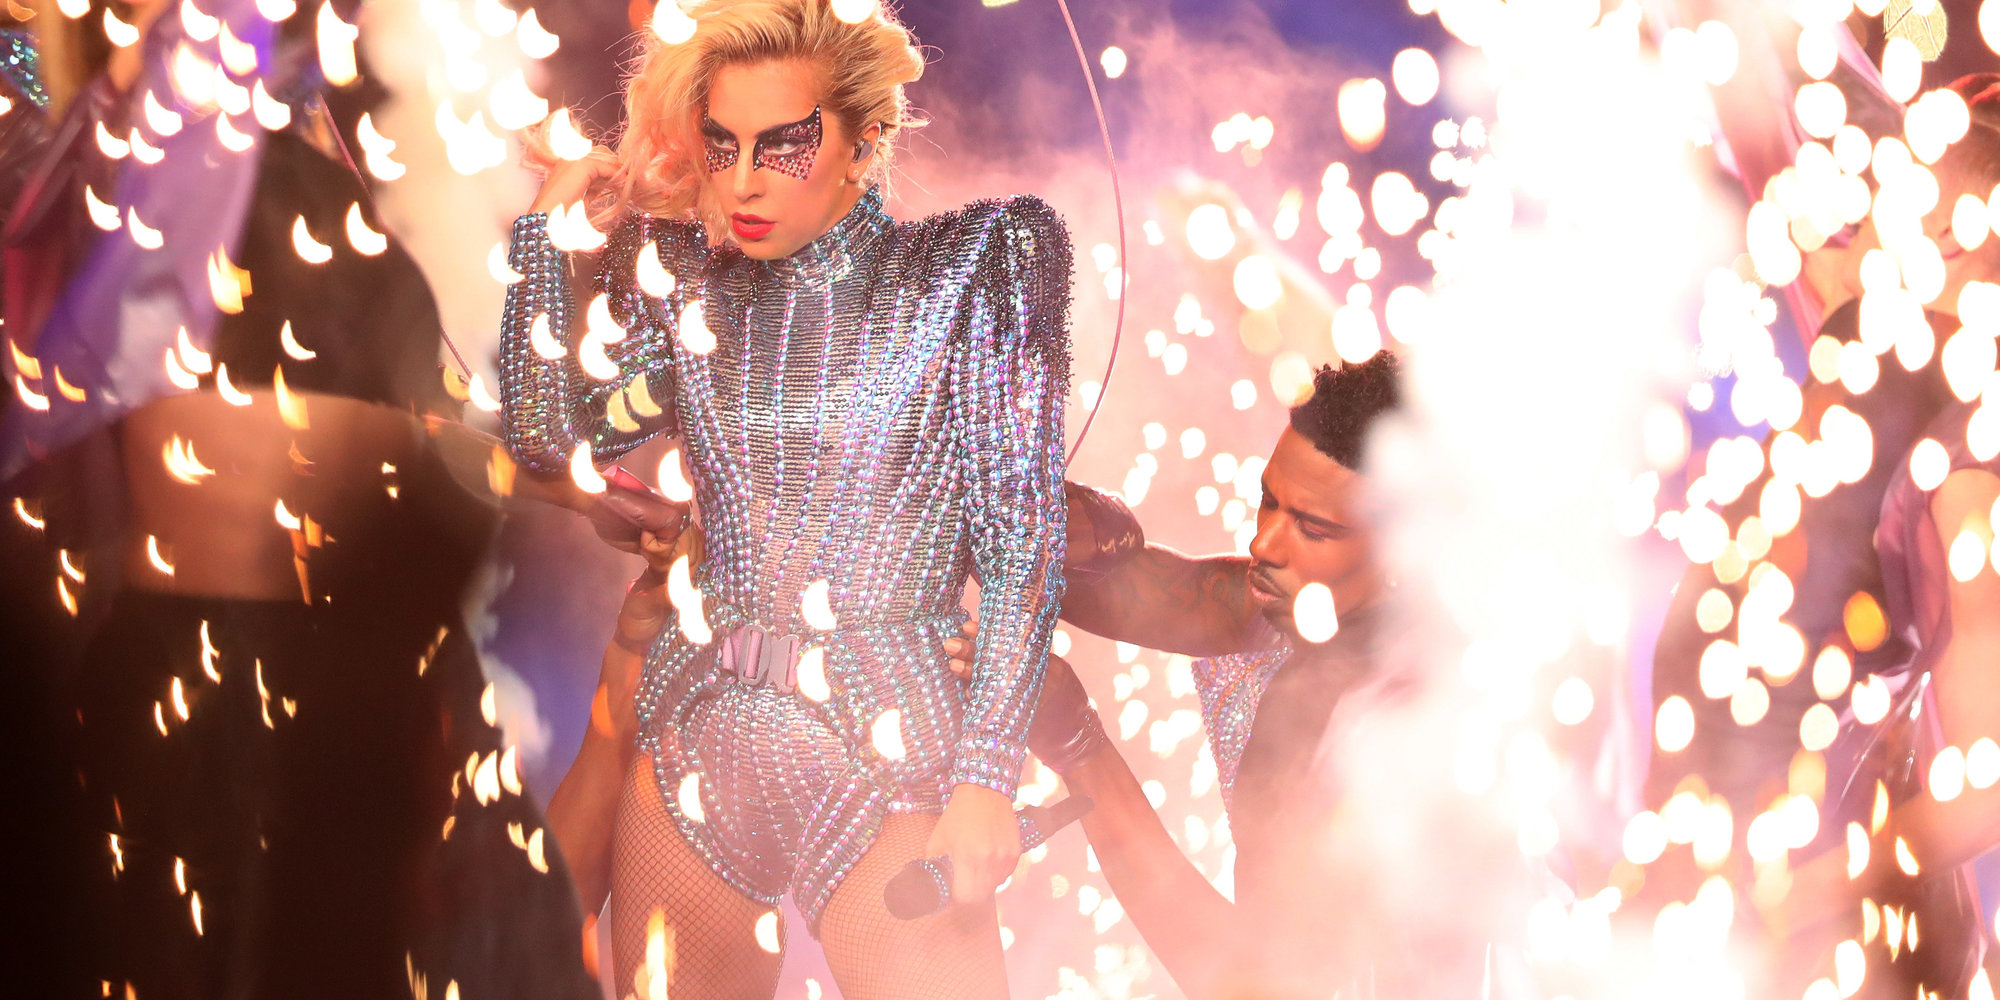 HOUSTON, TX - FEBRUARY 05:  Lady Gaga performs during the Pepsi Zero Sugar Super Bowl 51 Halftime Show at NRG Stadium on February 5, 2017 in Houston, Texas.  (Photo by Tom Pennington/Getty Images) Brendan Wong Design Take a look at Luxury East House by Brendan Wong Design lady gaga superbowl 2017 Brendan Wong Design Take a look at Luxury East House by Brendan Wong Design lady gaga superbowl 2017